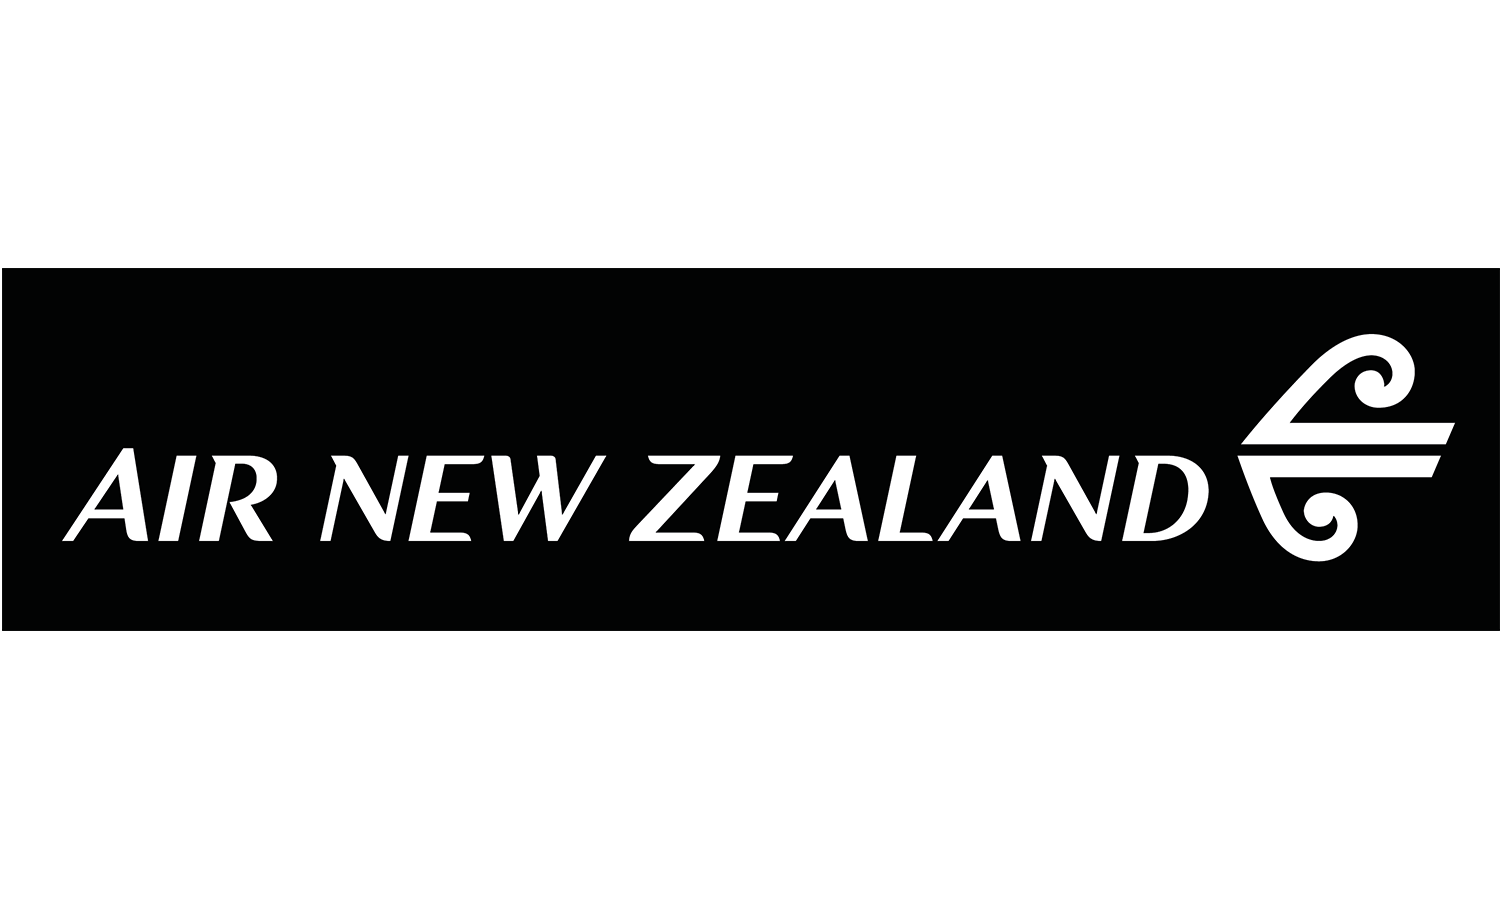 Air New Zealand Logo Black